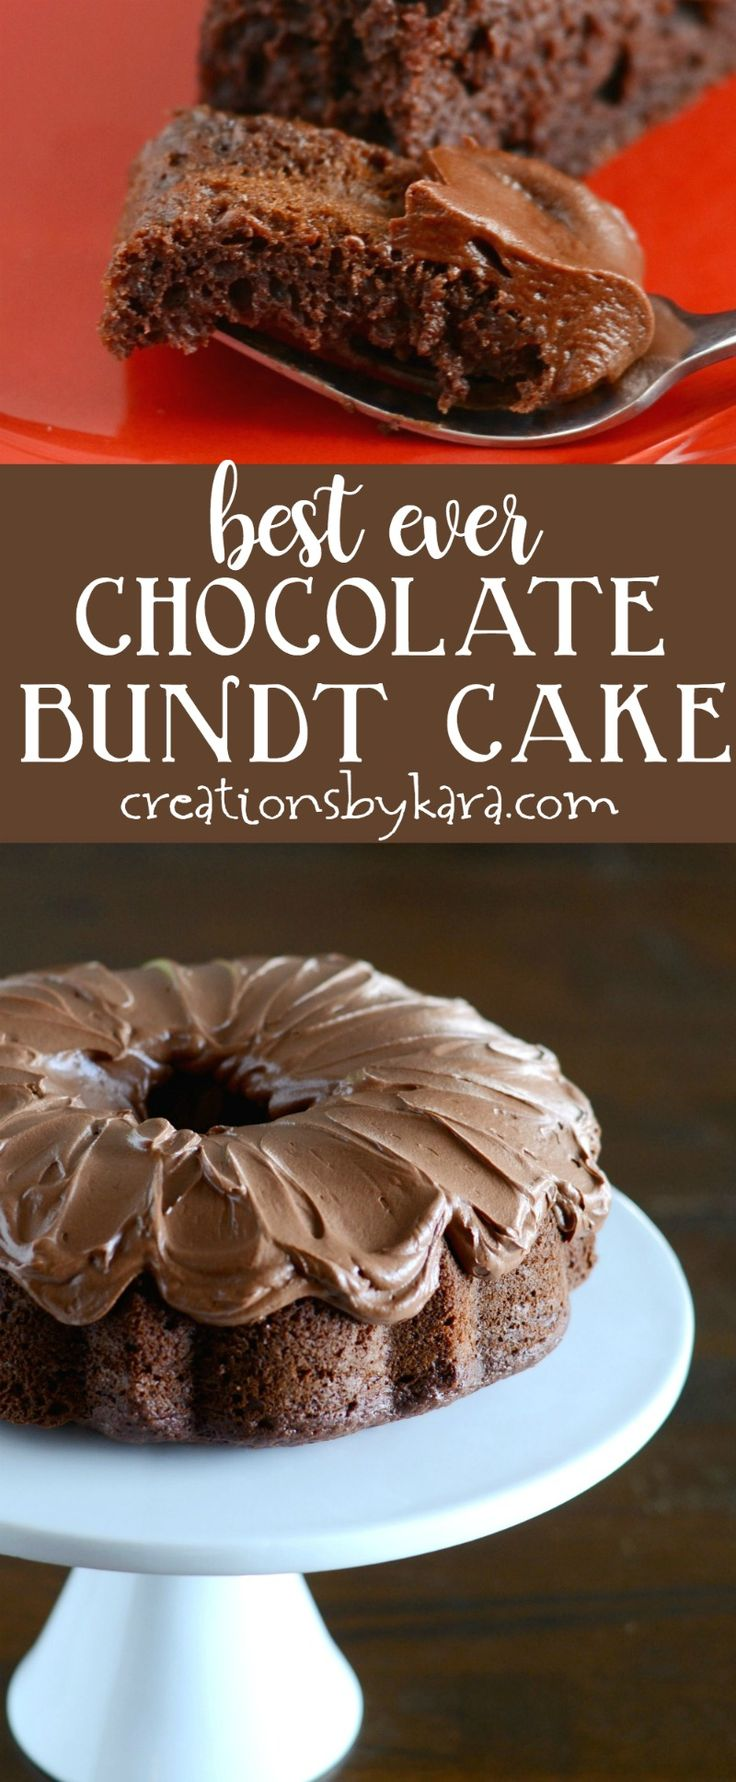 Best Ever Chocolate Bundt Cake | Simple to make, but the most delicious chocolate cake ever! | Chocolate Lover's Bundt Cake #chocolatecake #bundtcake